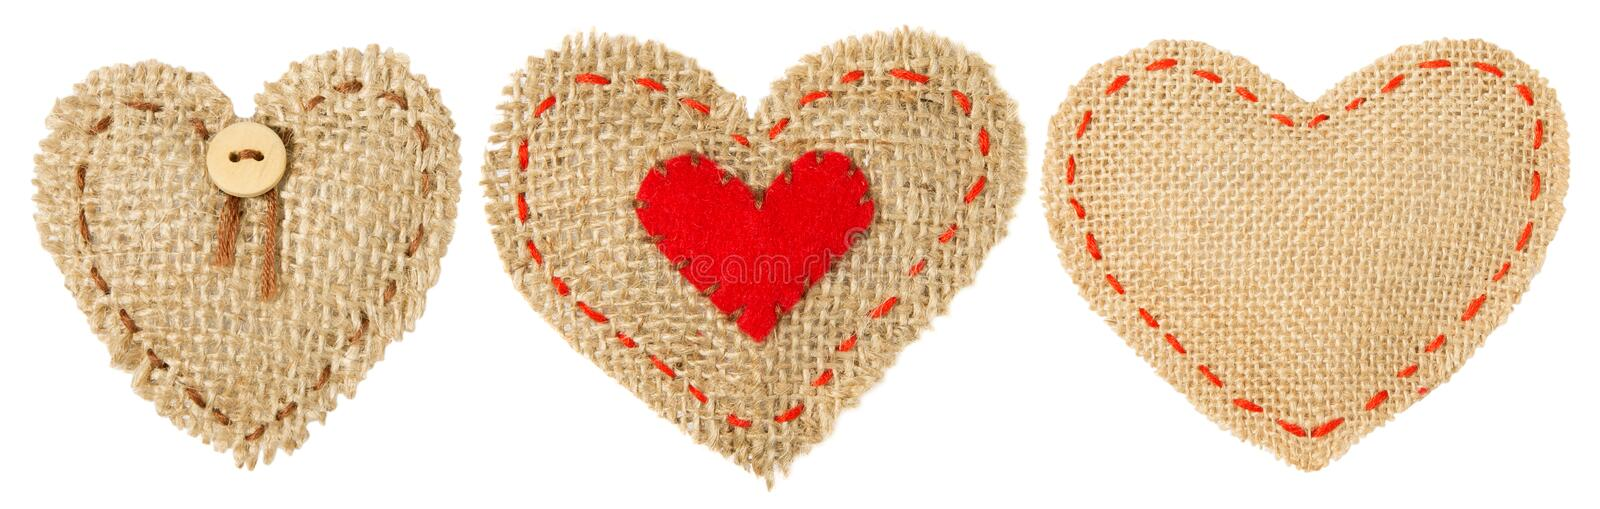 Heart Shape Patch Object with Stitches Seam, Sackcloth Decorative Fabric, Valentines Day Burlap royalty free stock photography